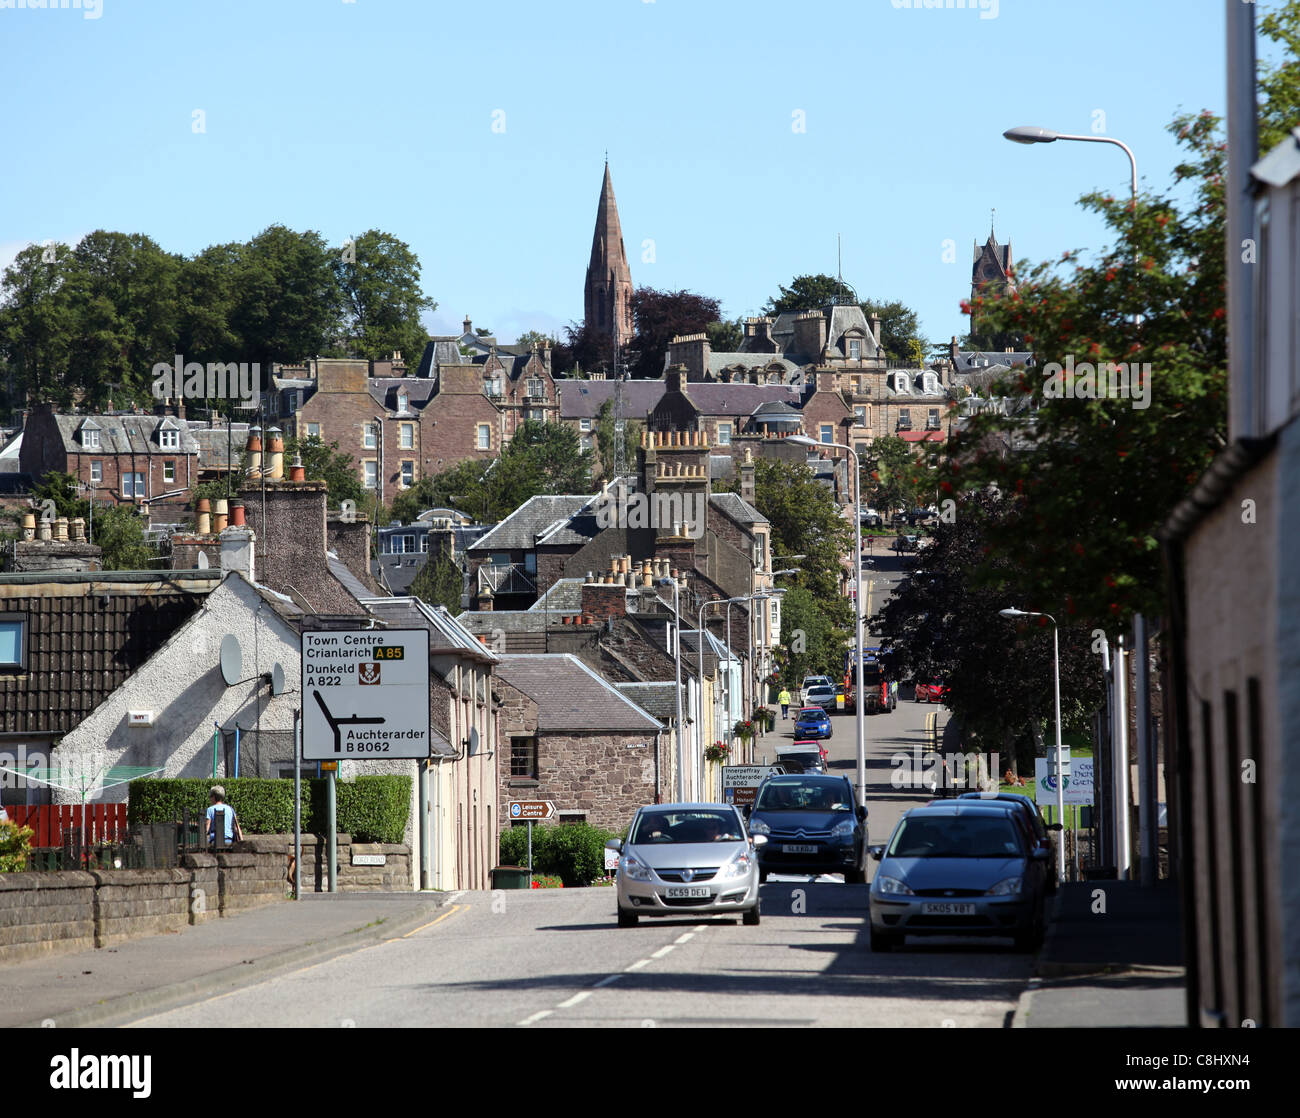 The town centre of Crieff in Perthshire, Scotland, UK - Stock Image